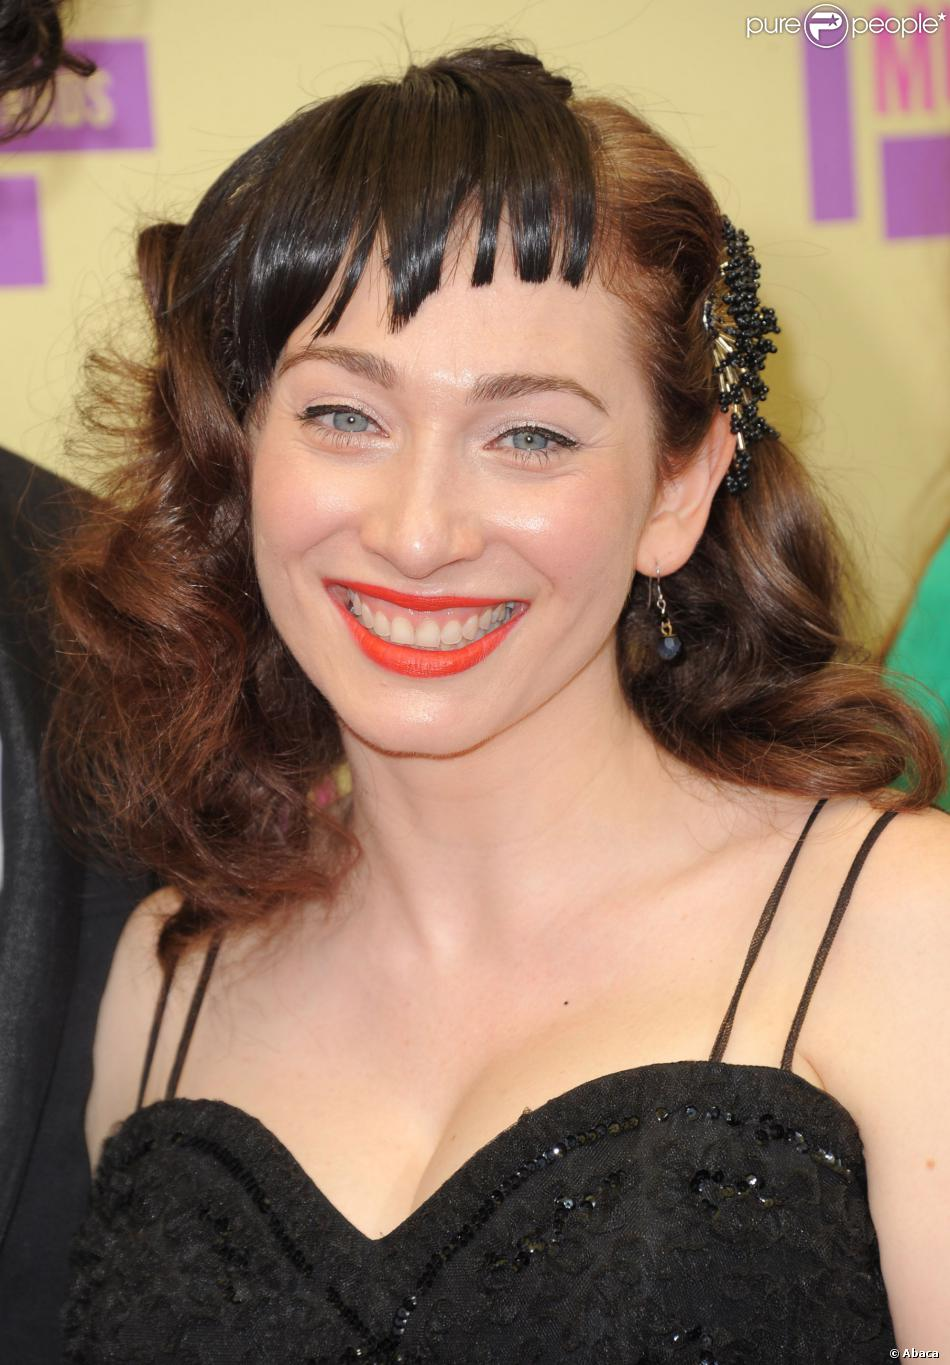 Regina Spektor aux MTV Video Music Awards à Los Angeles, le 6 septembre 2012.